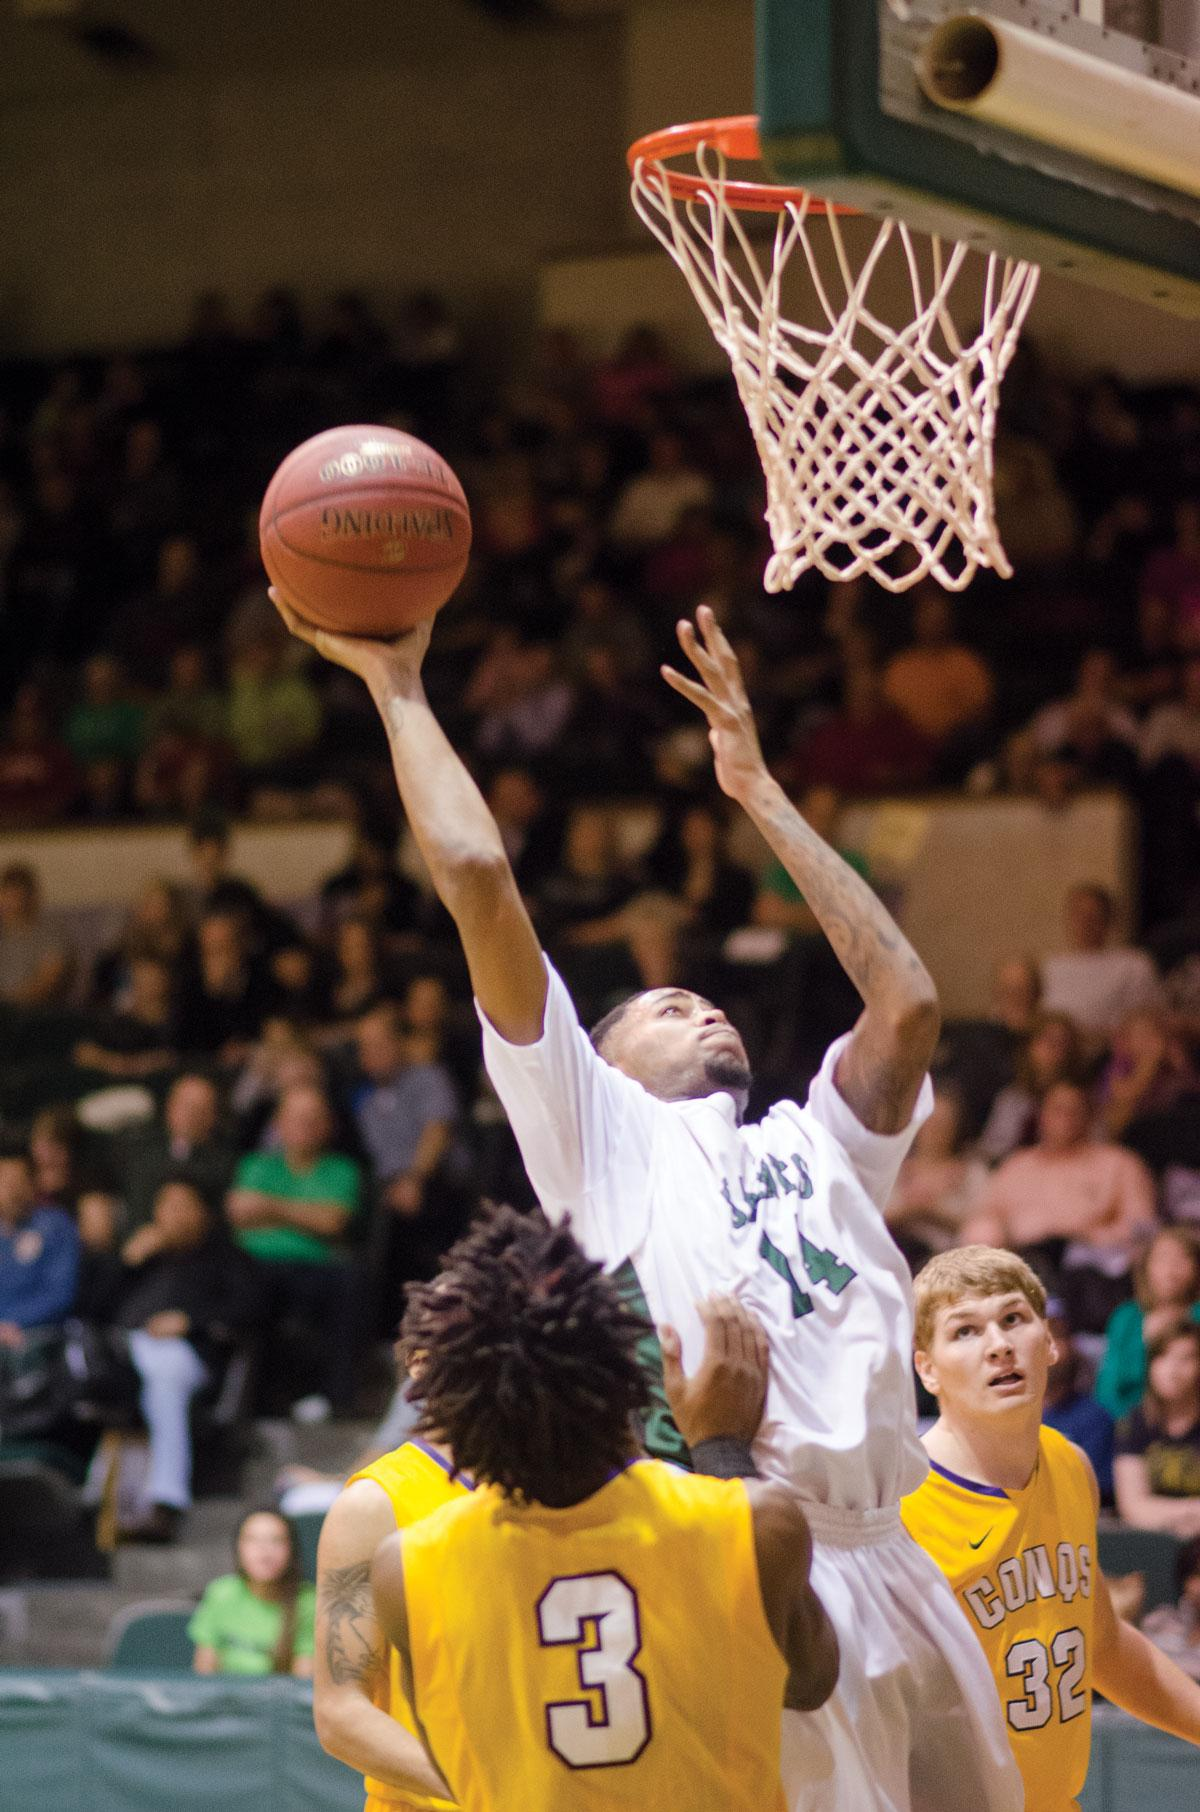 Crusader photo/ JakubStepanovic Quentin Purtue aims for two points in a basket in Seward's game against the Dodge City Conquistadors.